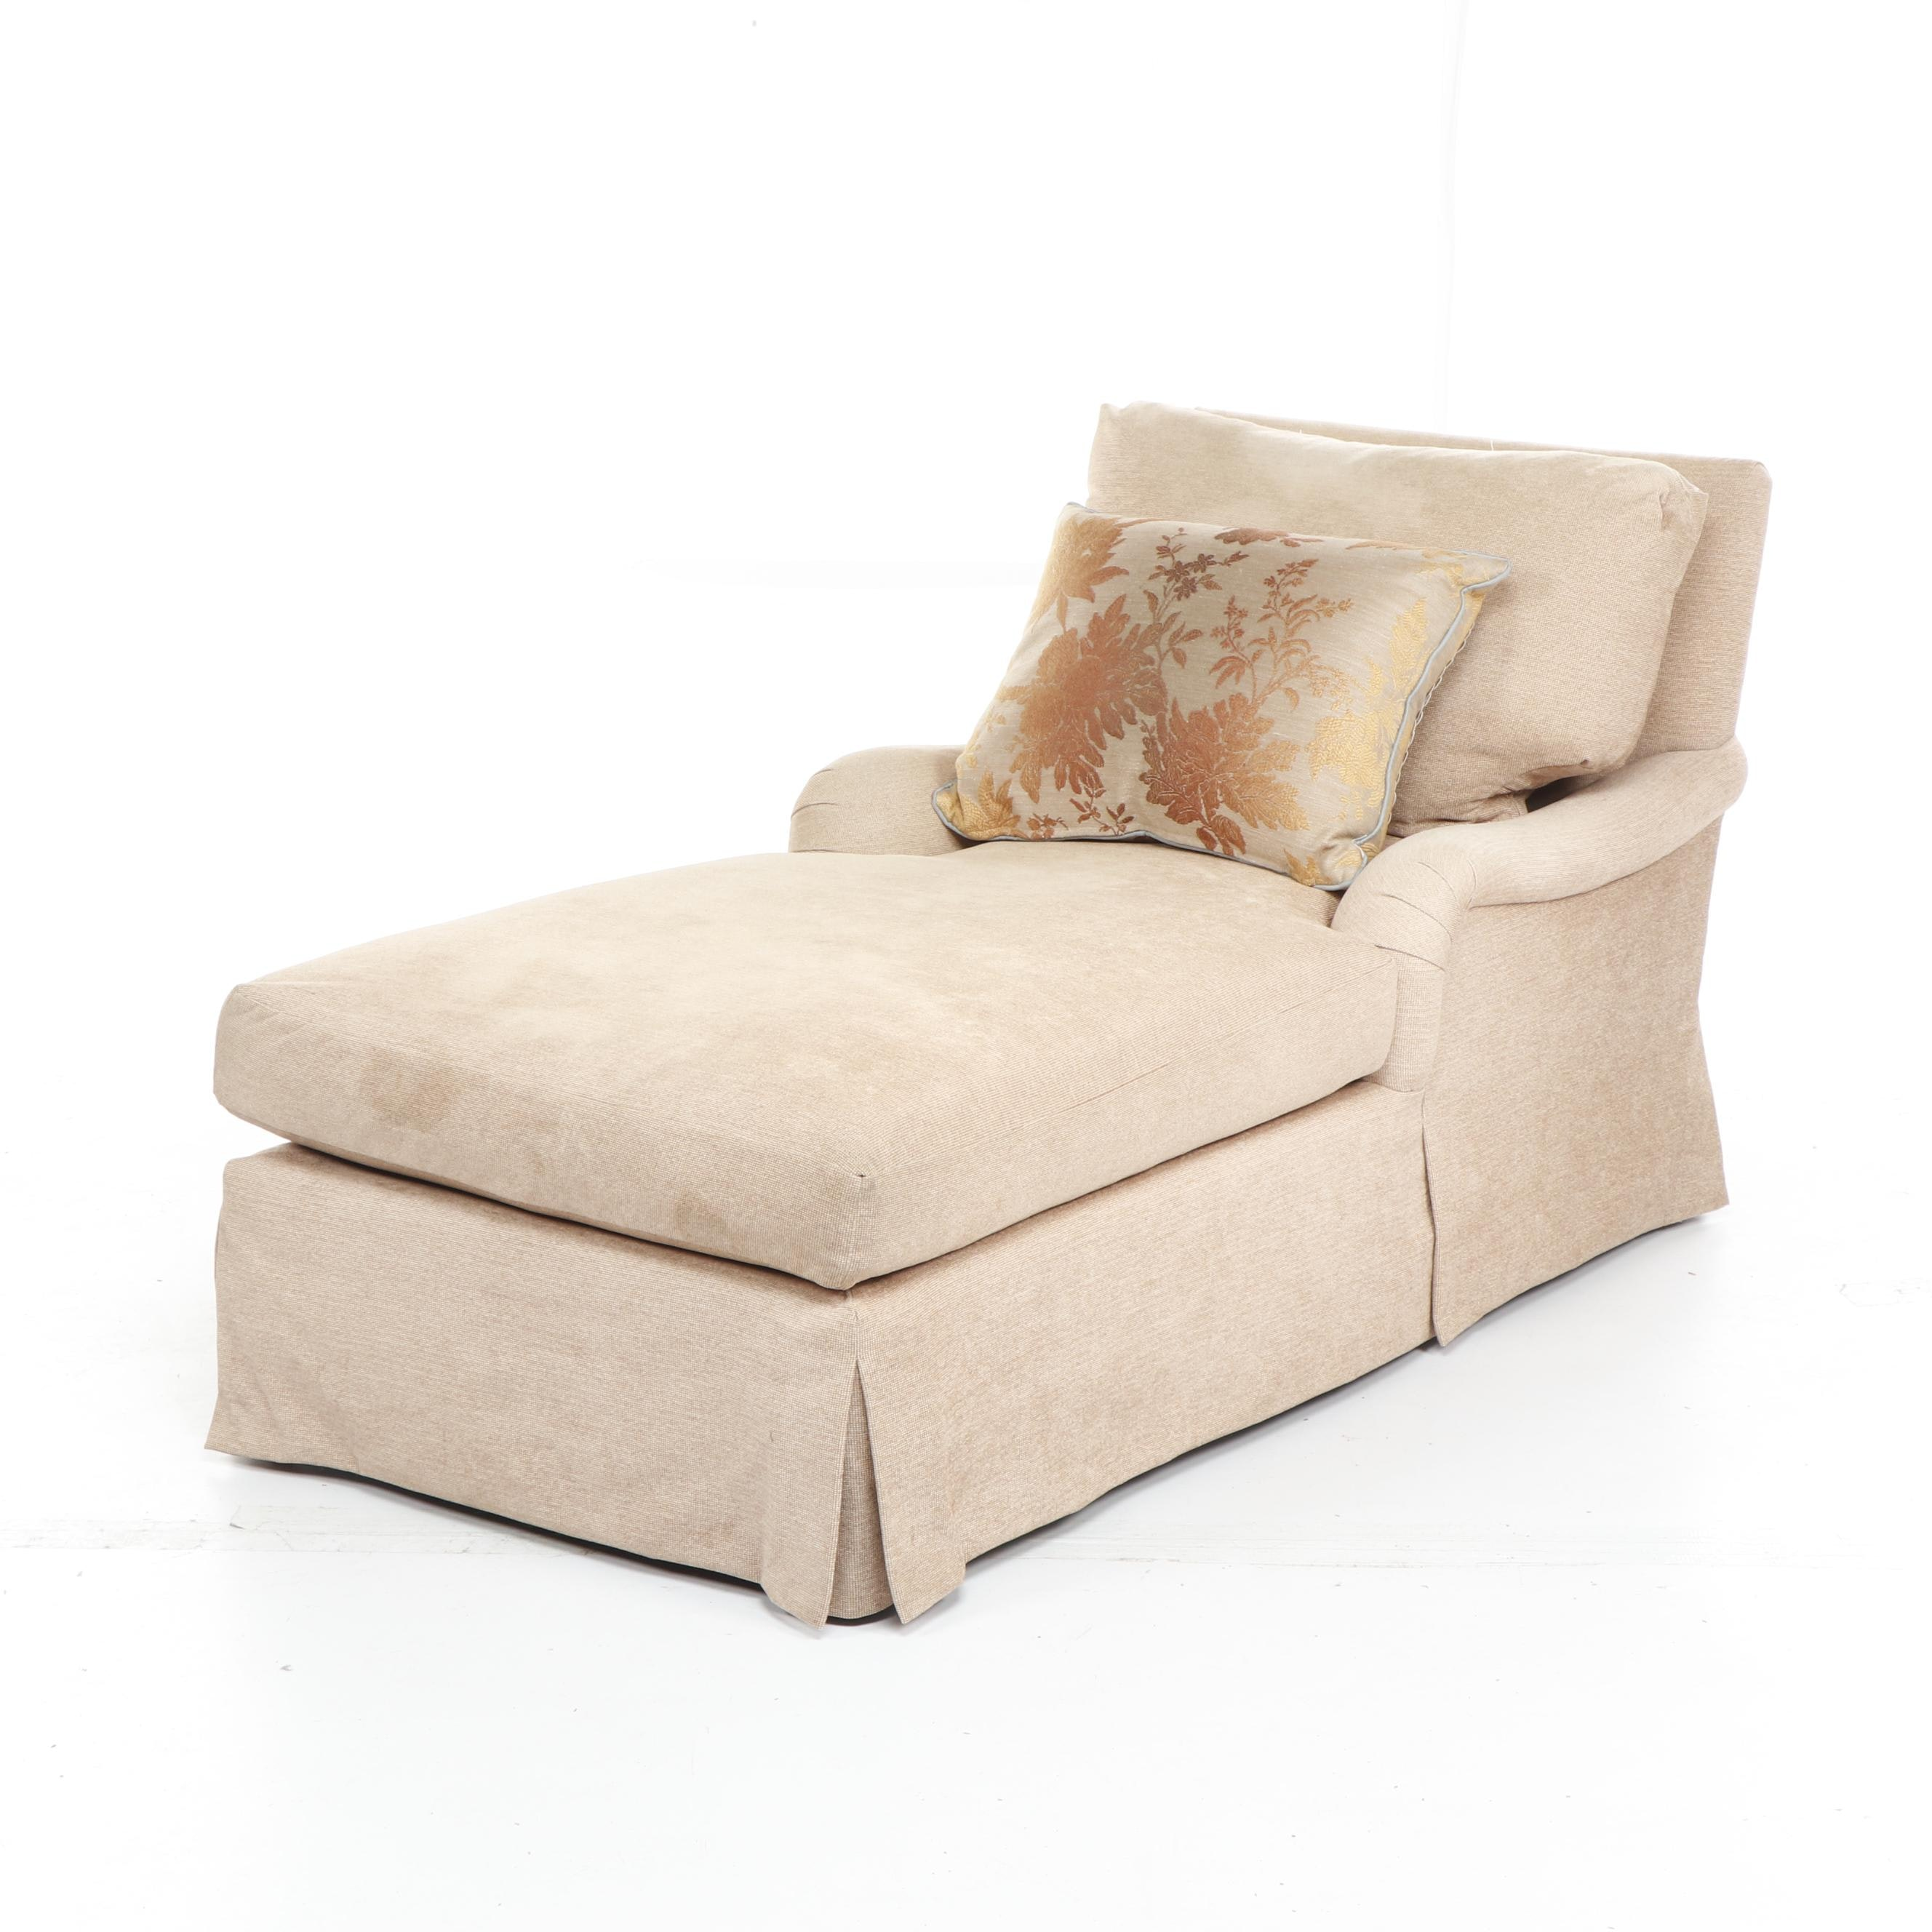 Contemporary Beige Chaise Lounge with Throw Pillow